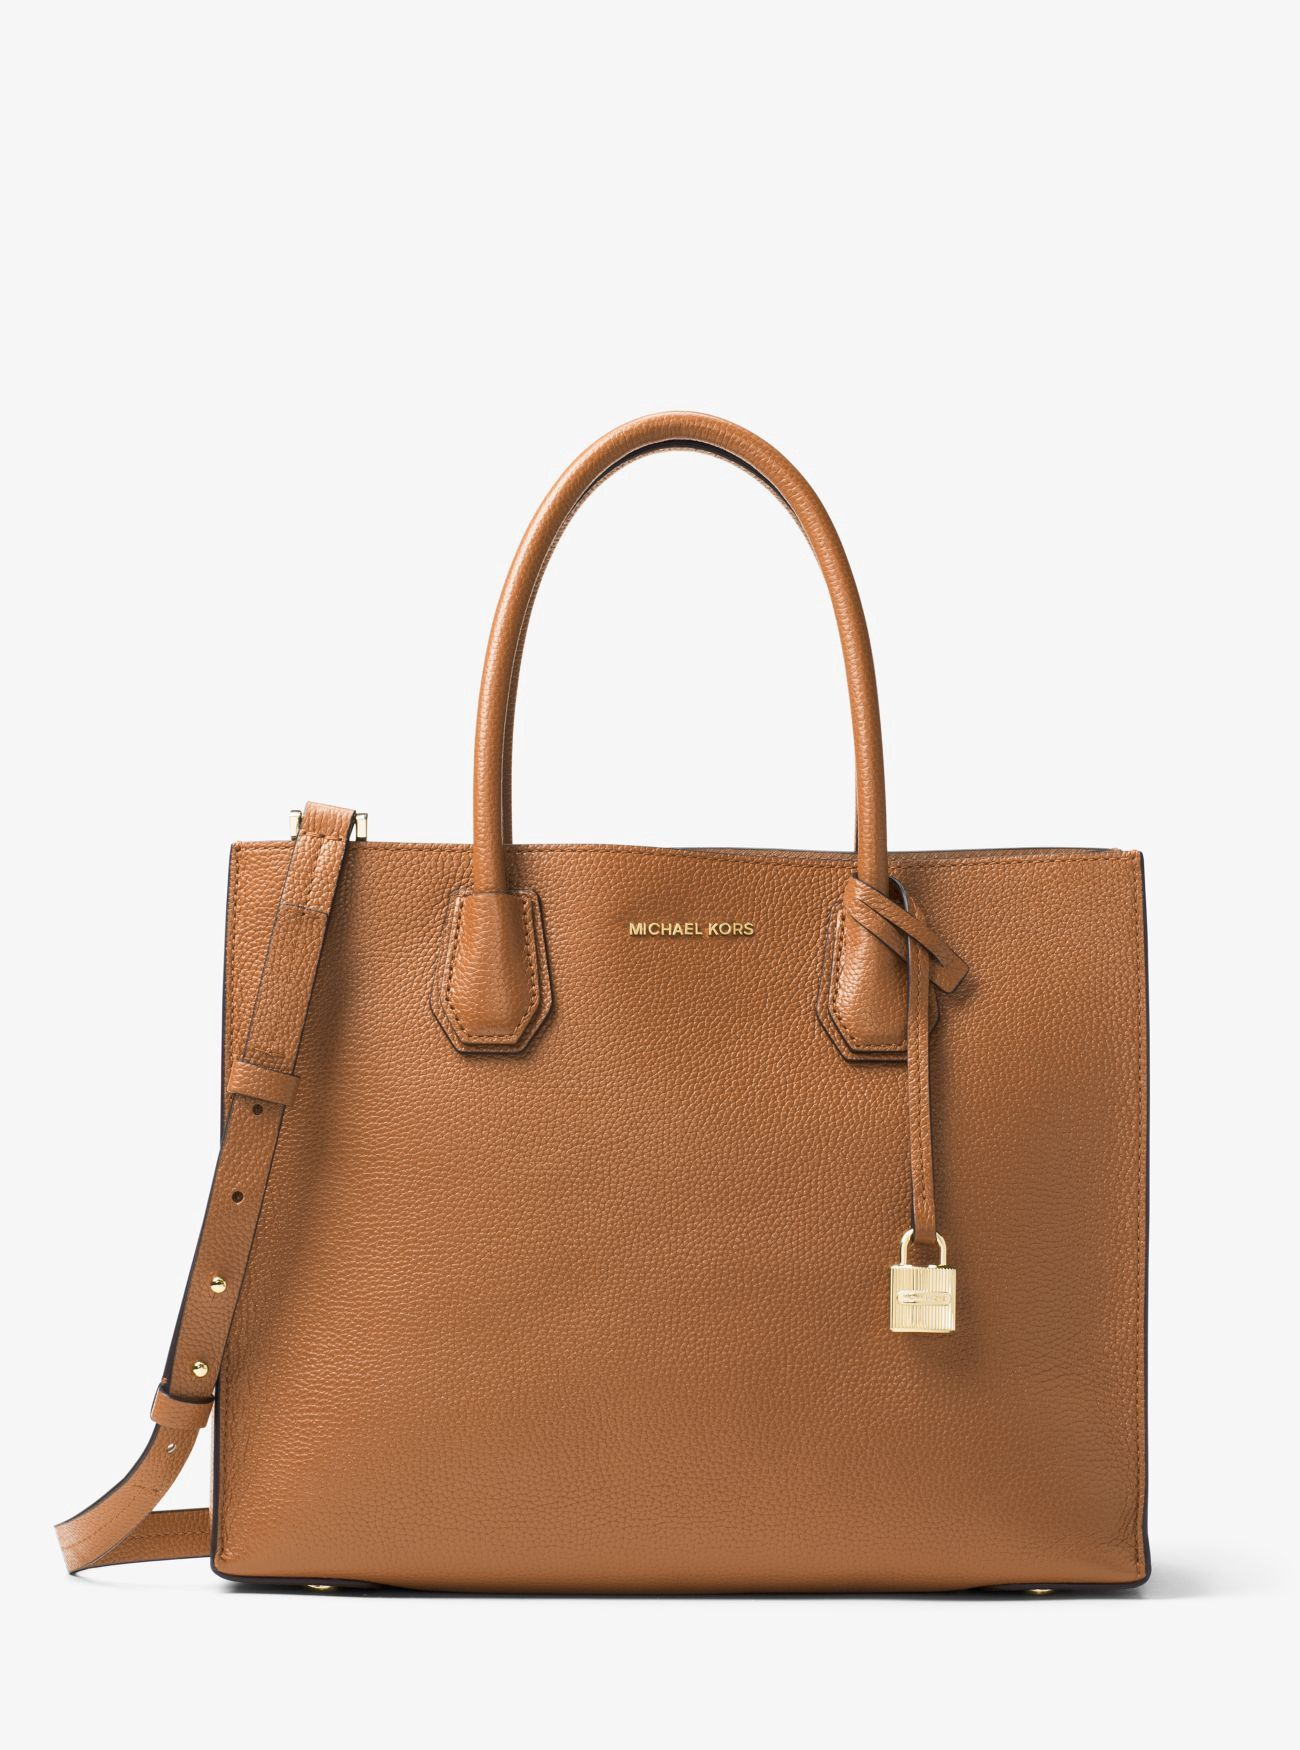 6fac349b267f MICHAEL KORS Mercer Large Leather Tote.  michaelkors  bags  canvas  tote   leather  lining  polyester  shoulder bags  hand bags